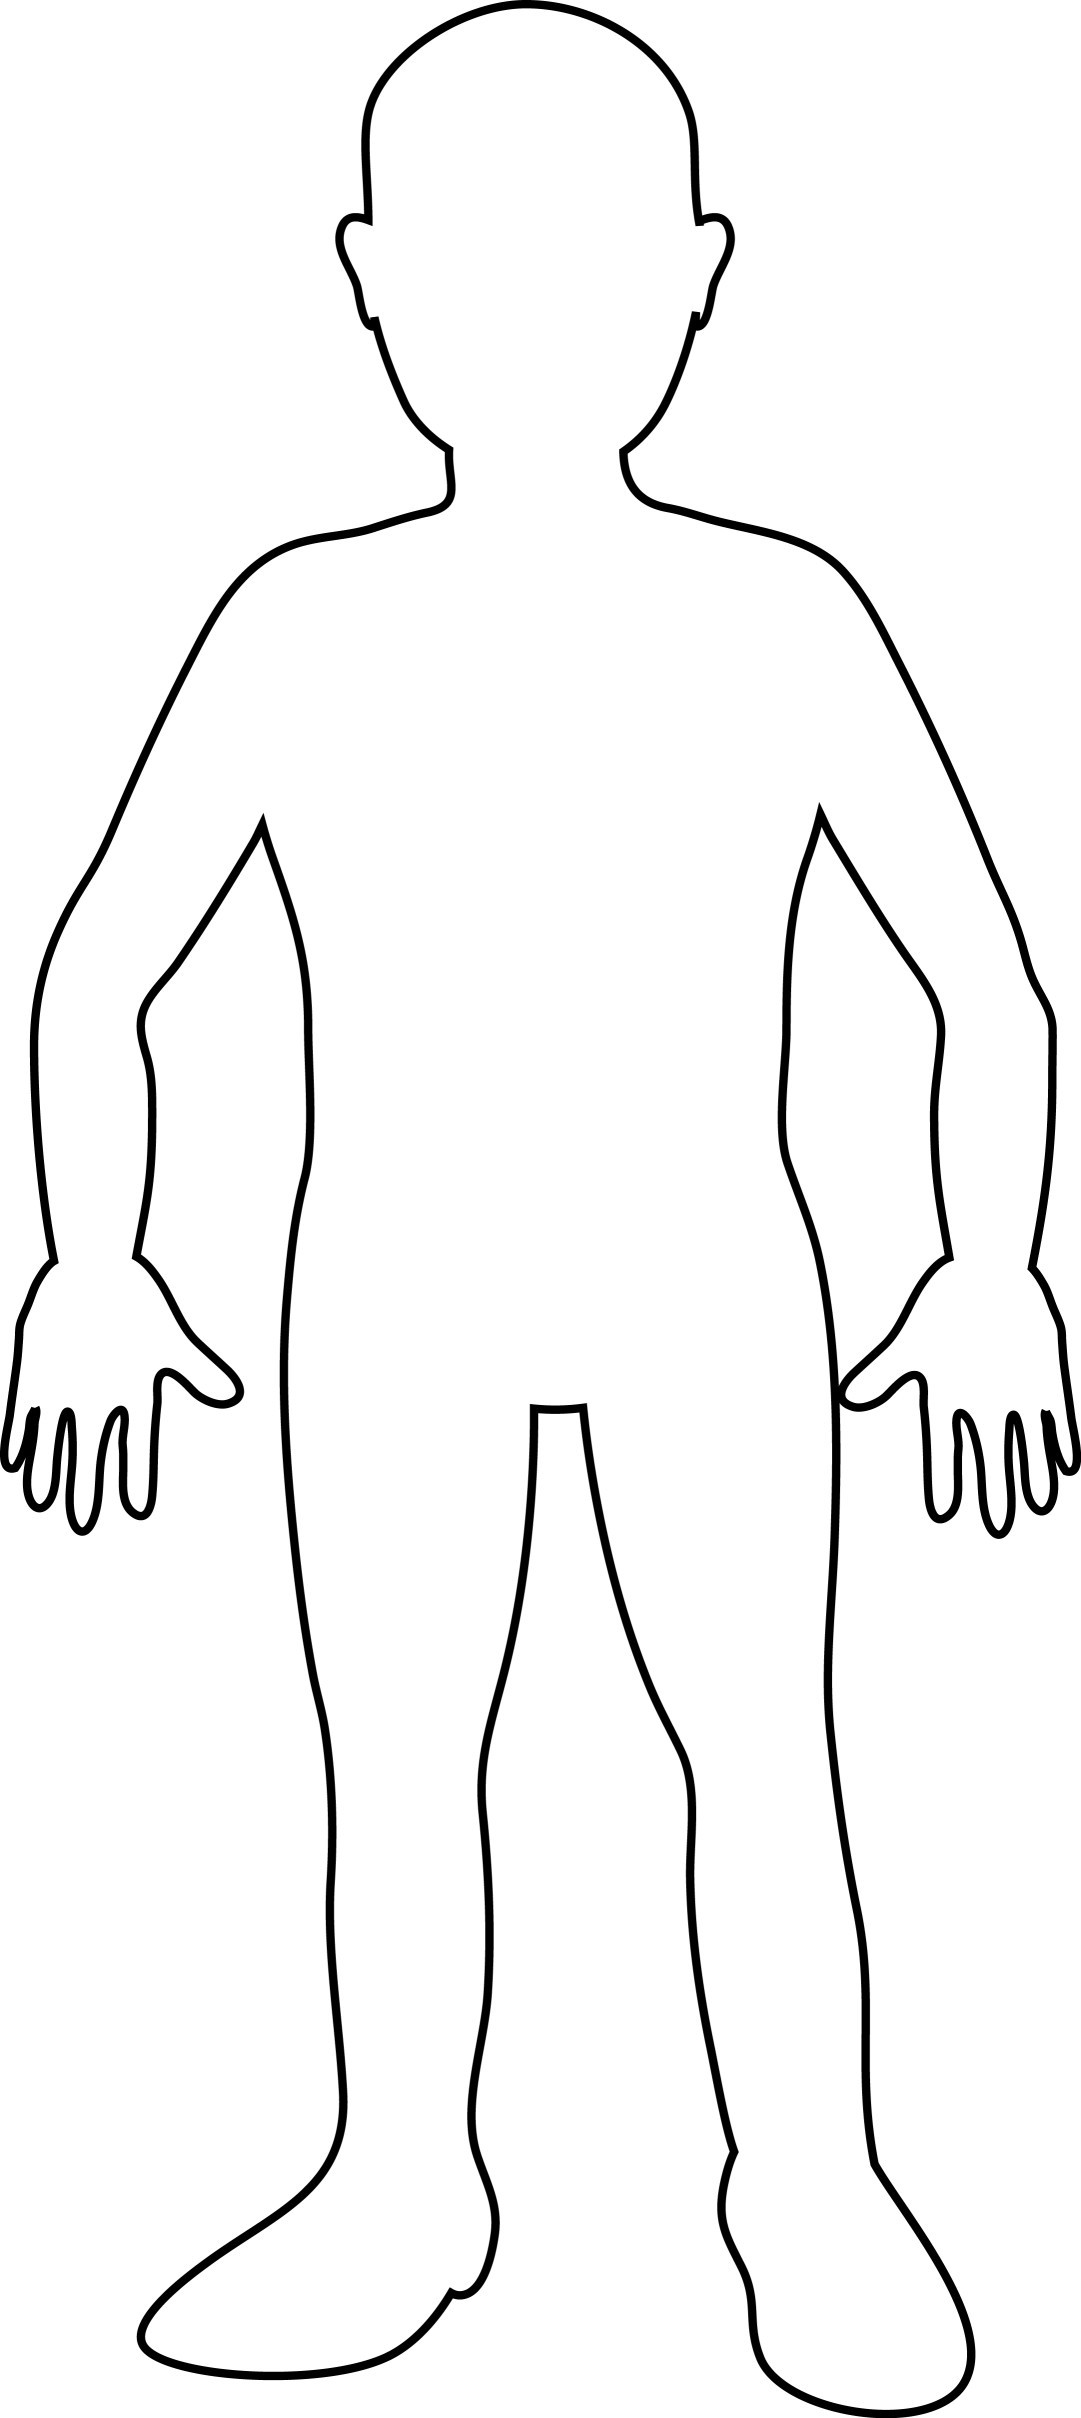 Blank body parts clipart vector black and white stock With Body Image Clipart Blank Human 1 | Clip Art vector black and white stock